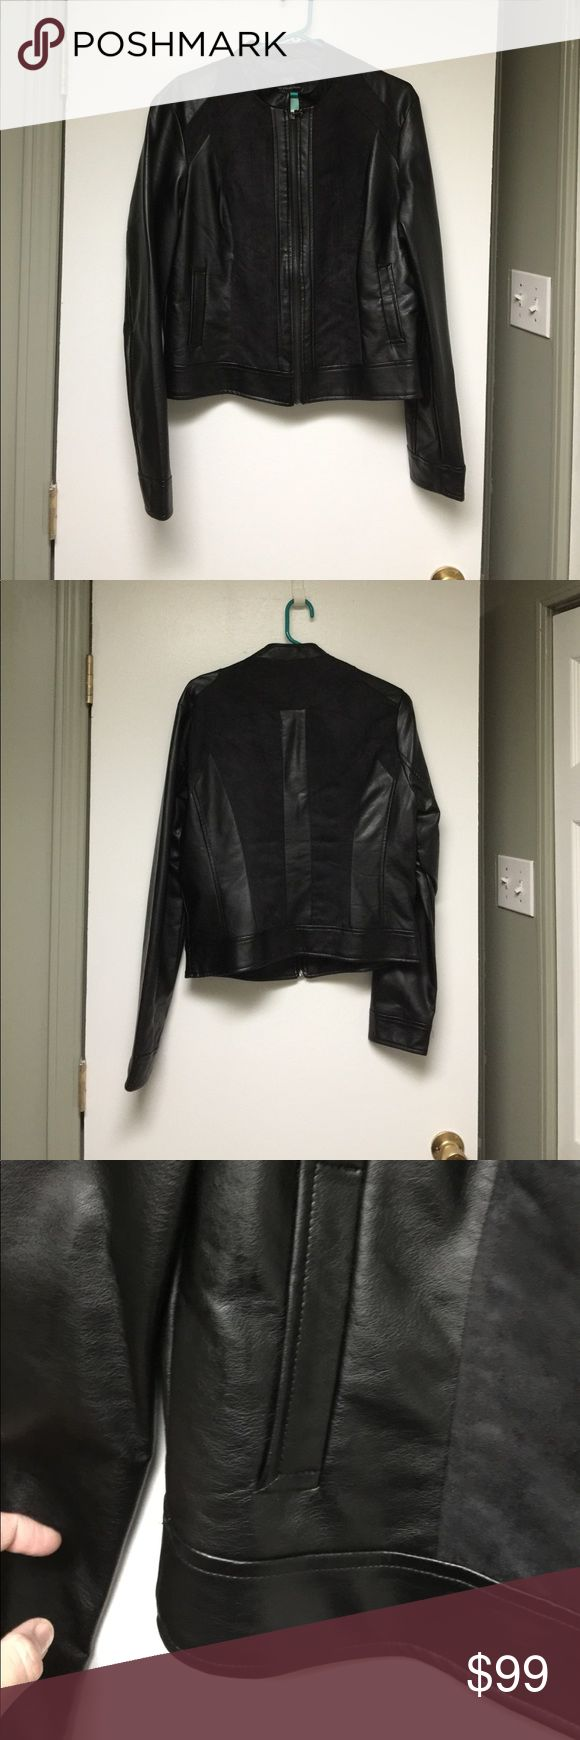 NWT Vegan leather and vegan suede motor jacket Black vegan leather and suede motorcycle jacket is made by Tart Collection. Size XL. Pit to pit measures 20 inches. Shoulder to hem measures 22 inches. Tart Collection Jackets & Coats